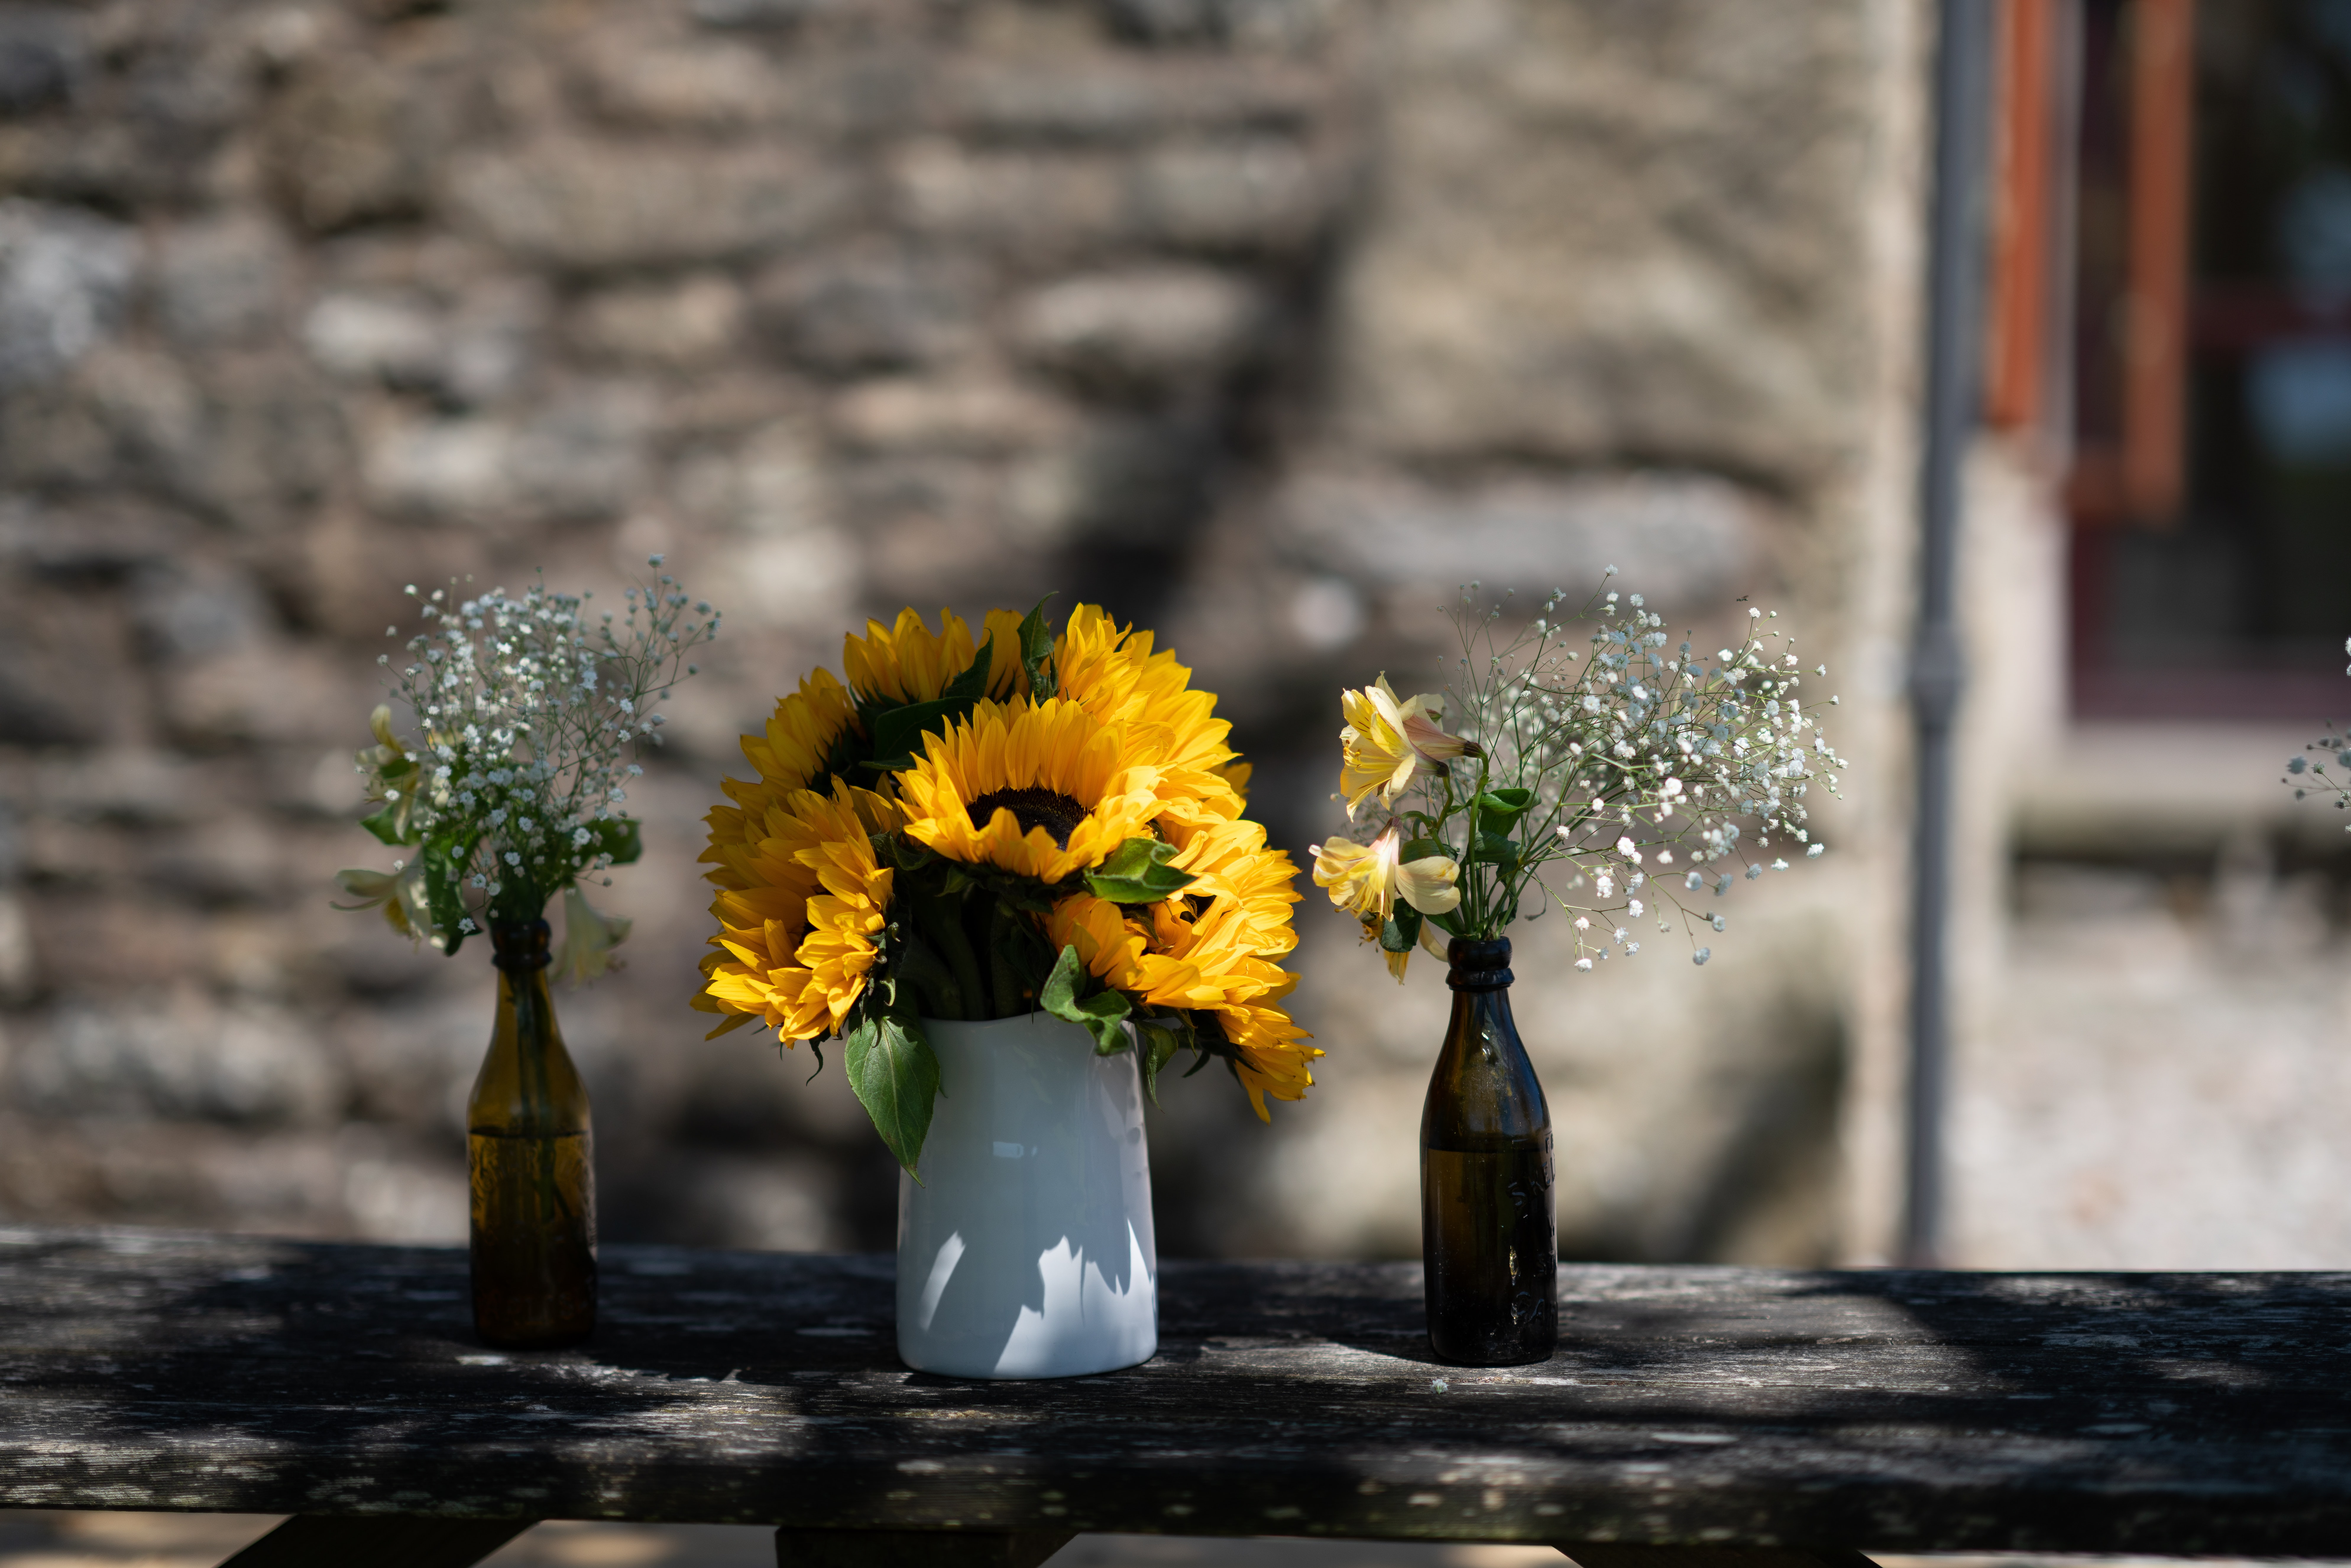 selective focus photography of yellow sunflower in vase